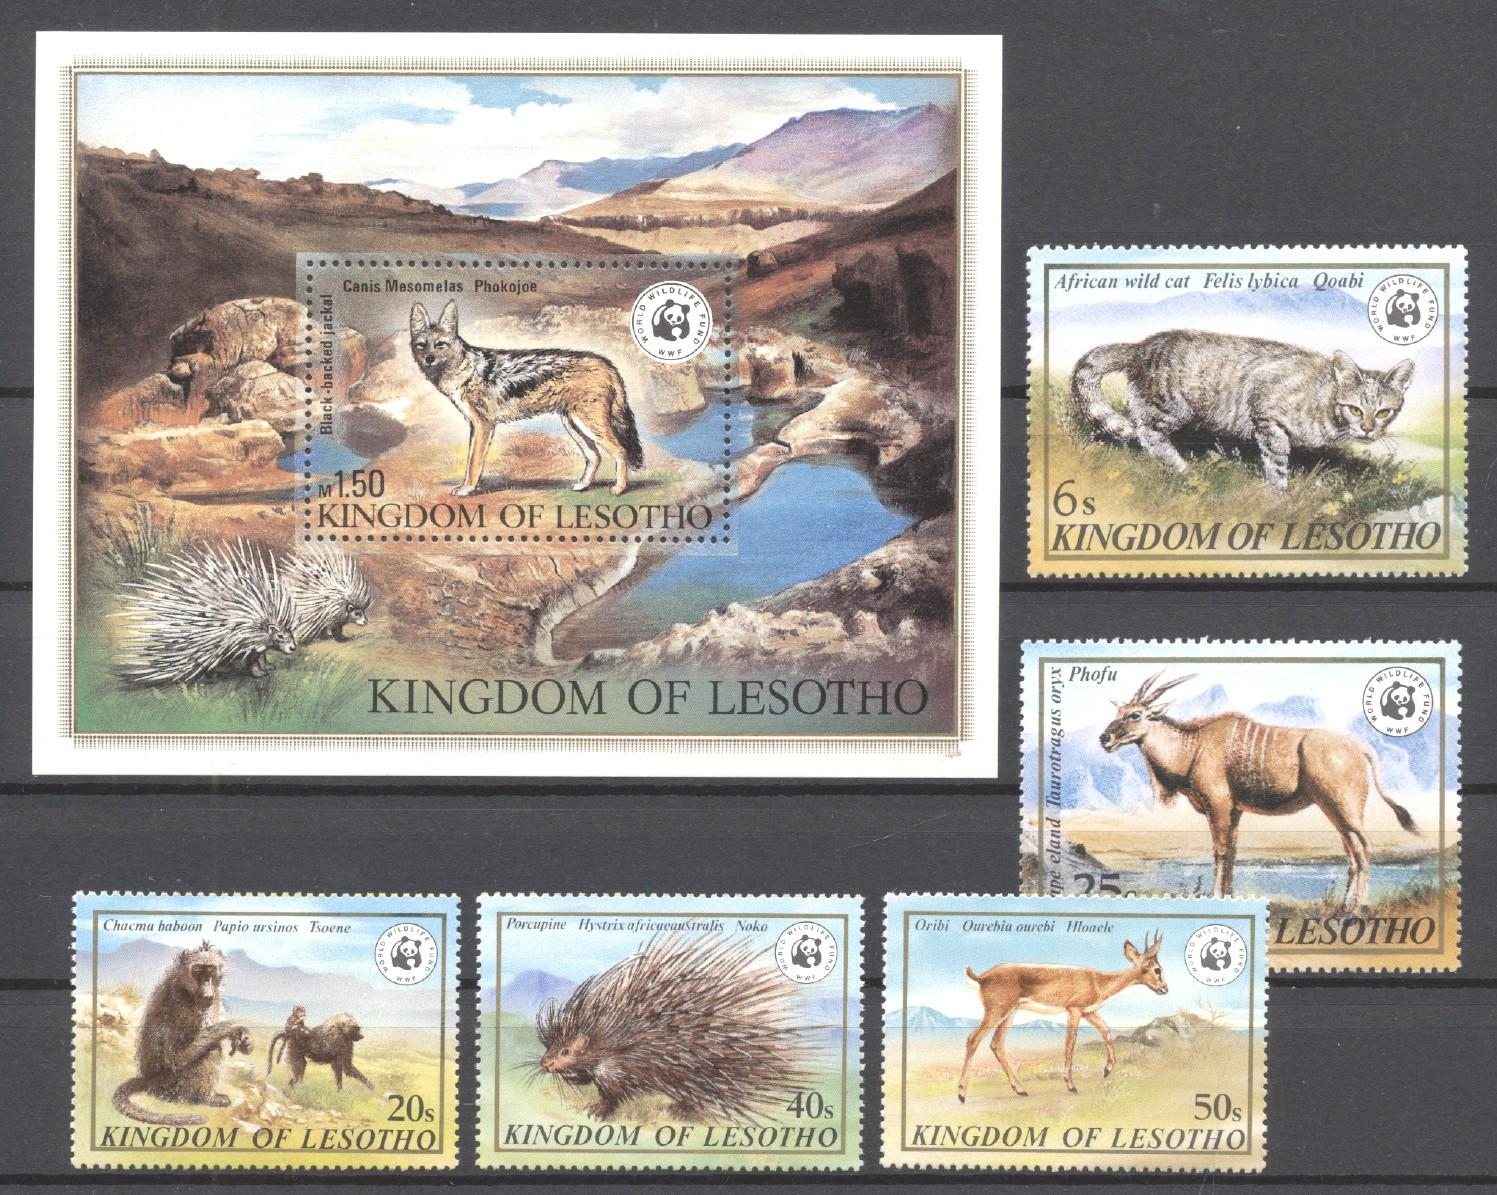 Stamps with WWF, Gazella, Jackal, Porcupine from Lesotho (image for product #271571)